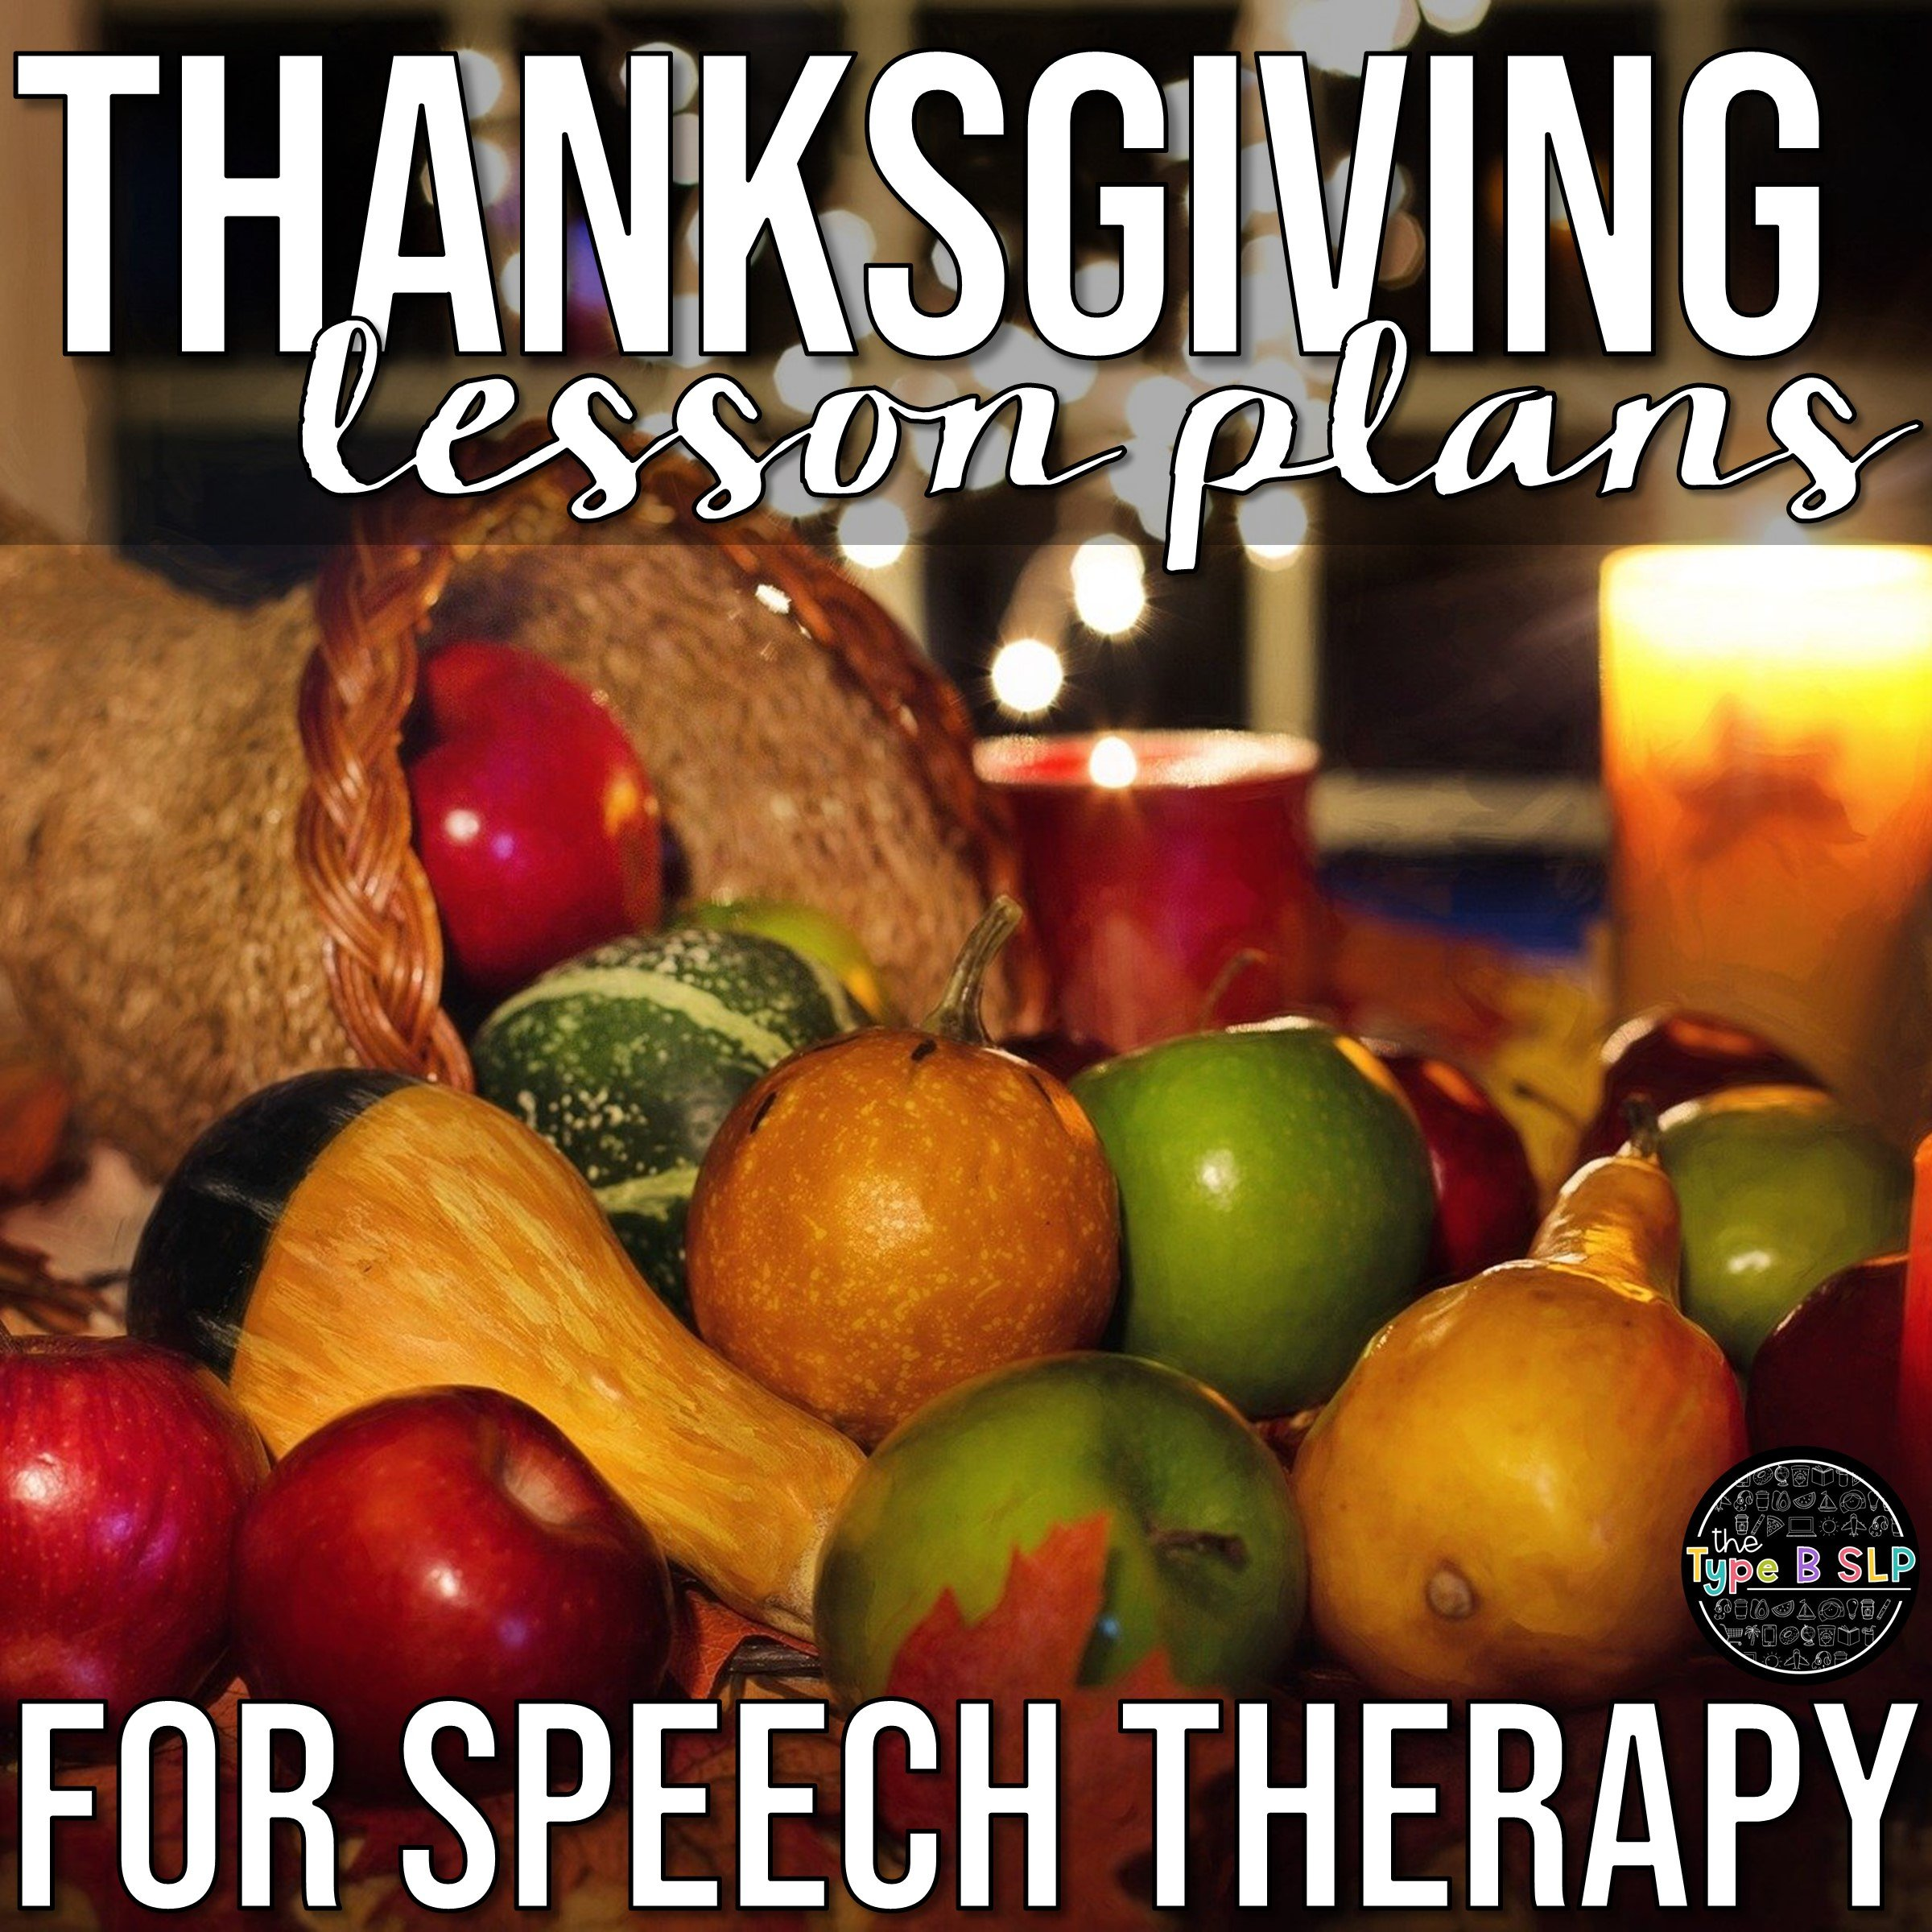 Thanksgiving Themed Lesson Plans for Speech Therapy